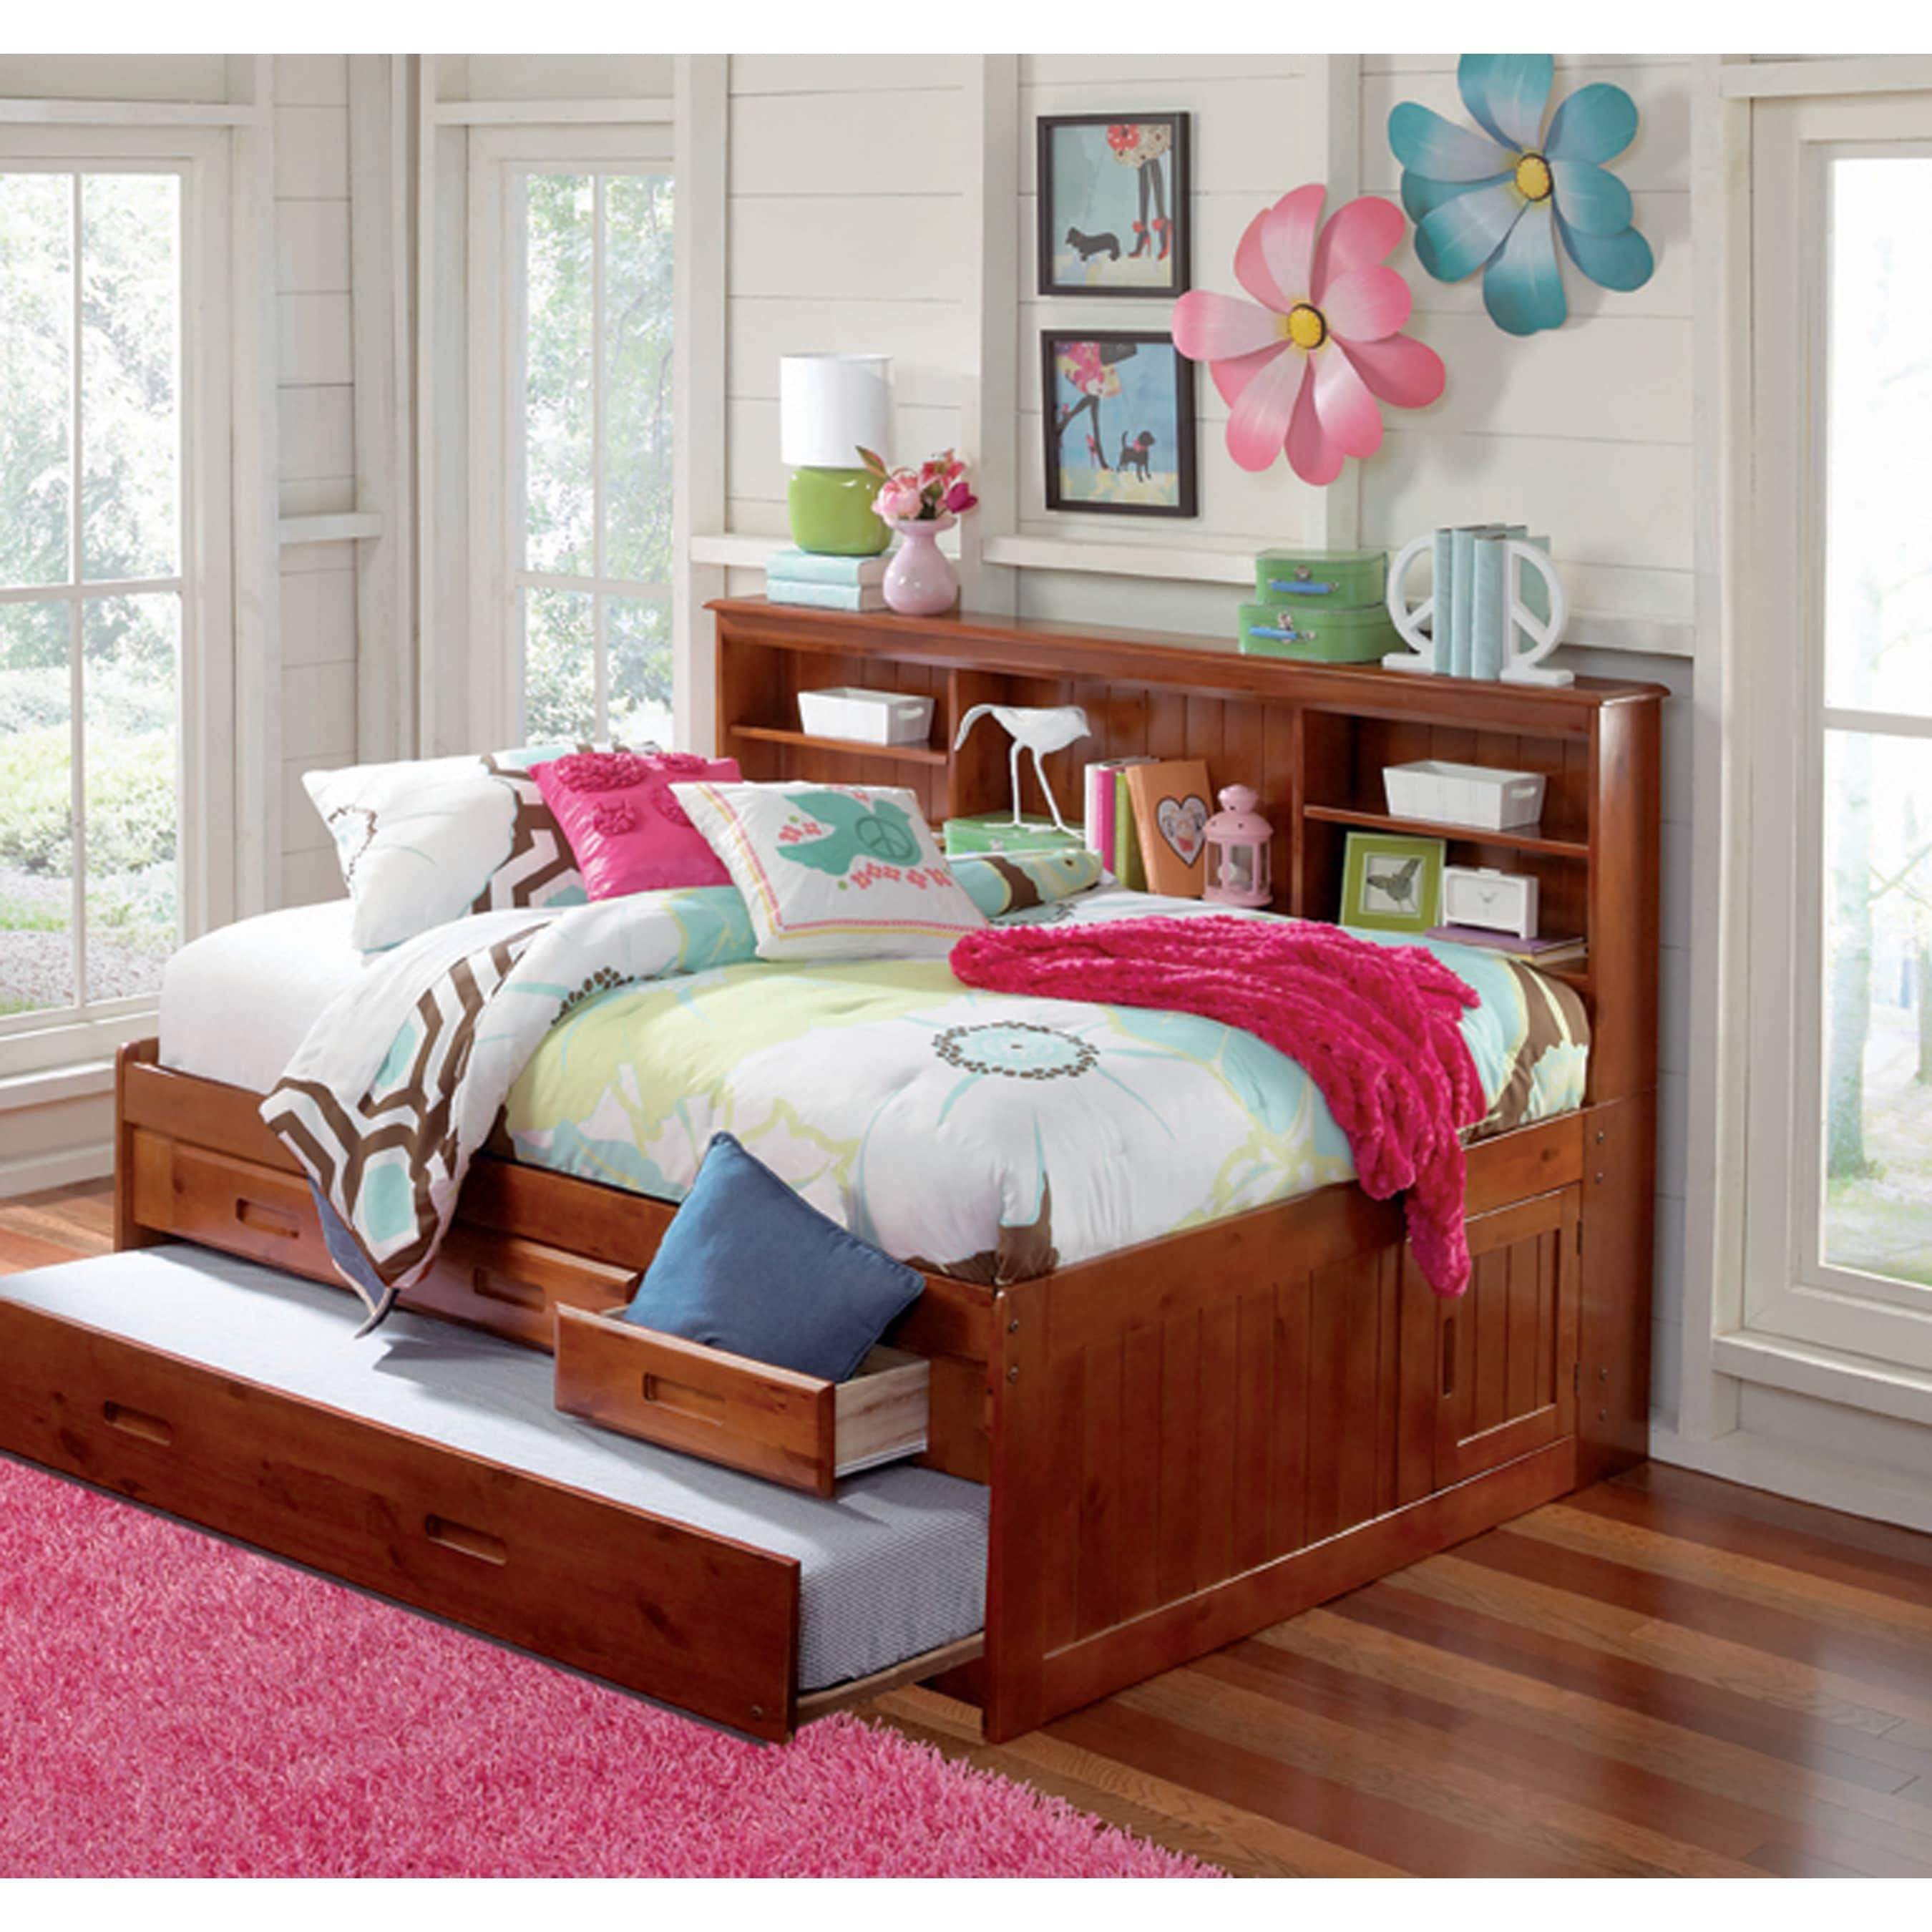 American Full Sized Daybed - 3 Drawers and Twin Trundle (...